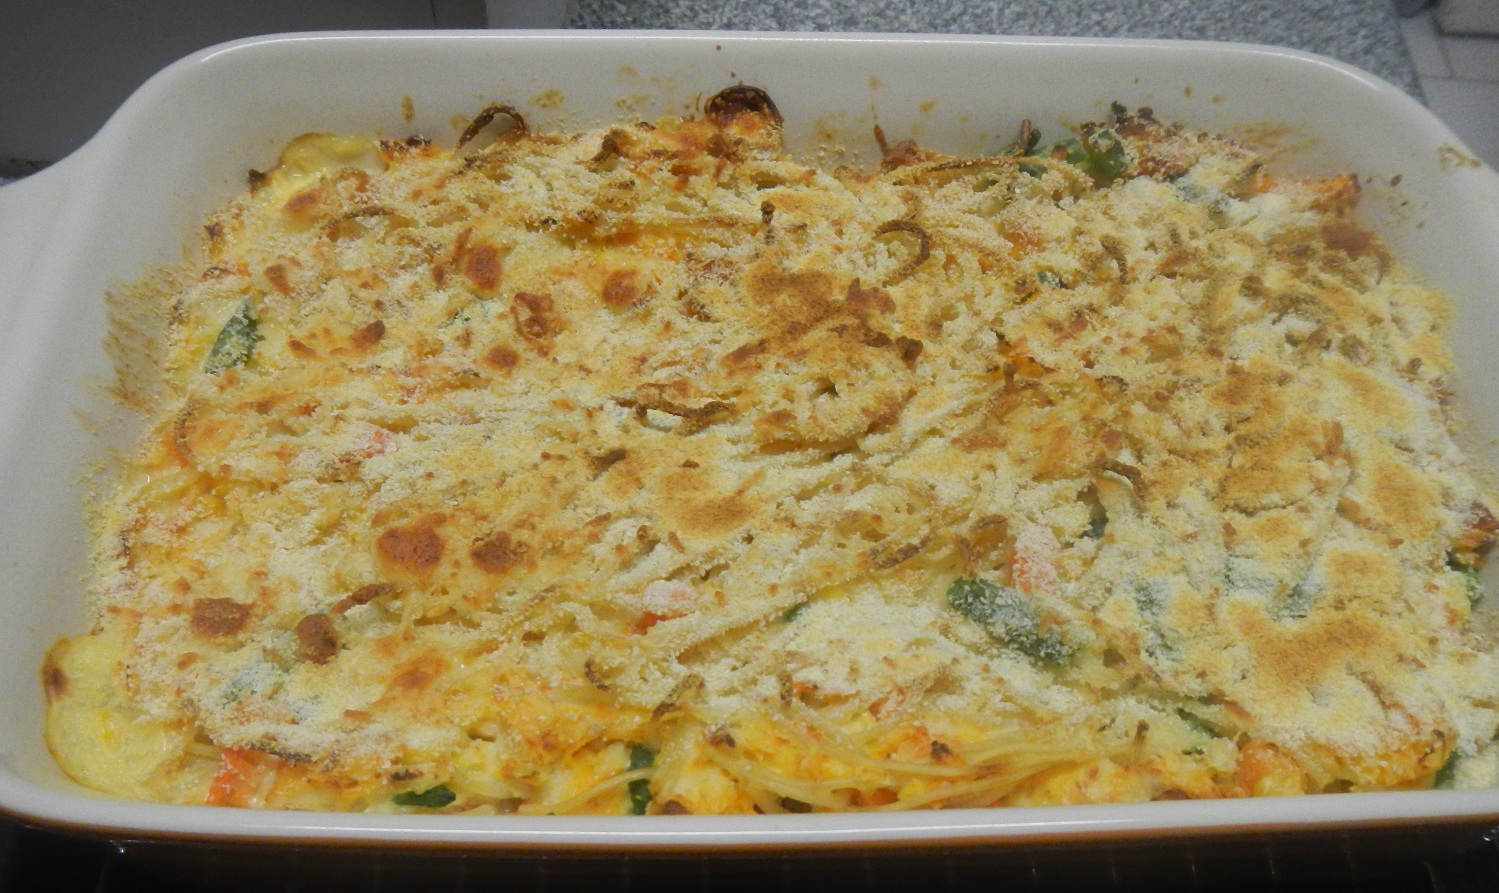 Cheesy Haddock and Pasta Bake